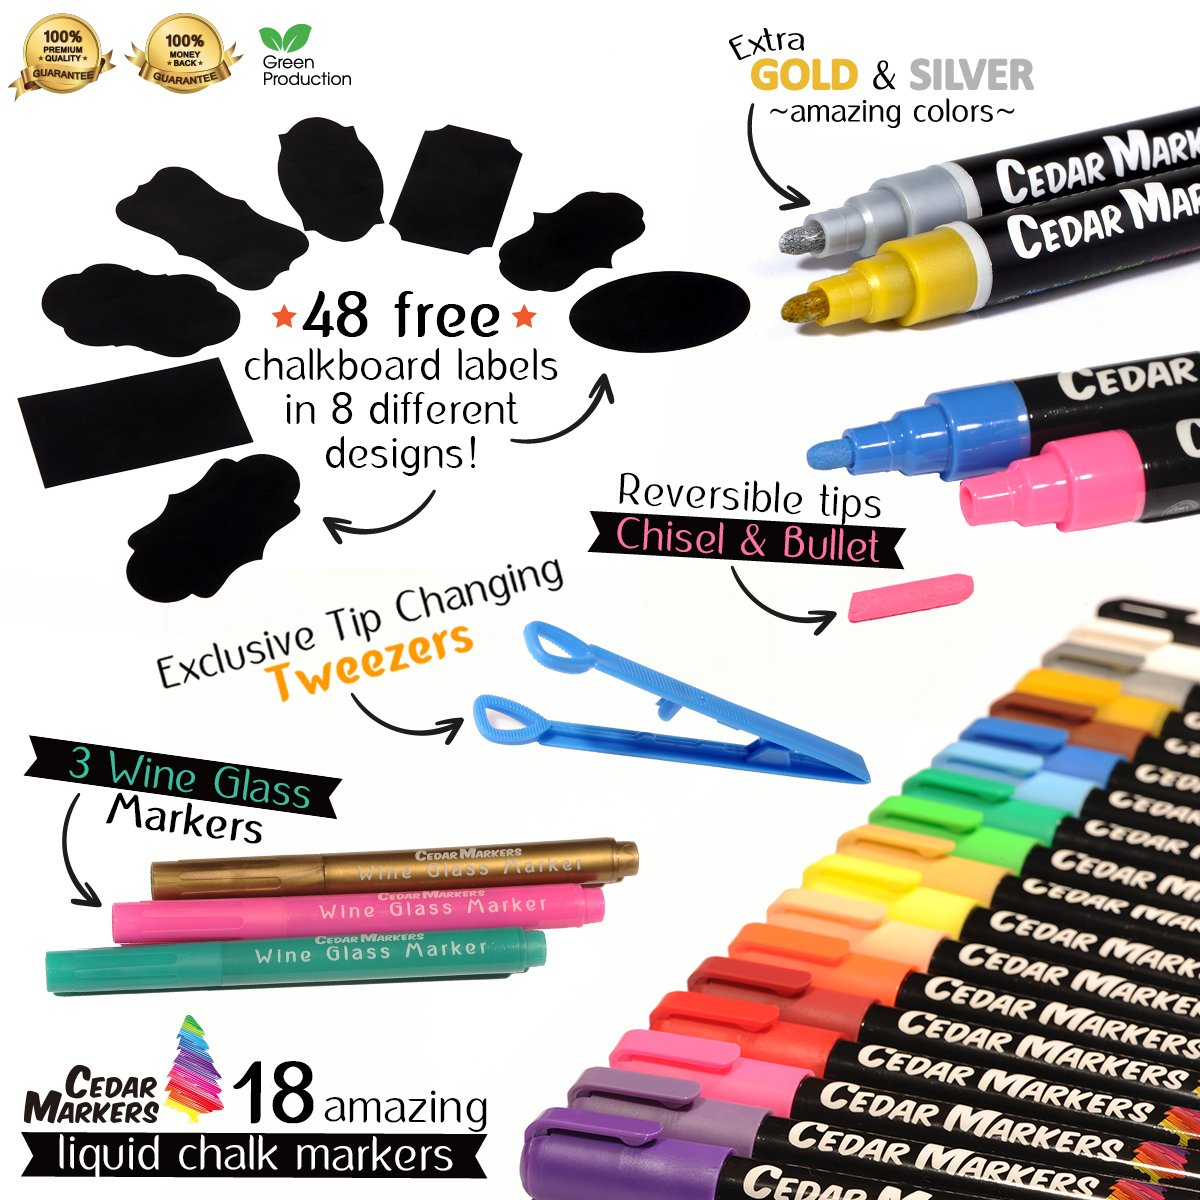 Cedar Markers Liquid Chalk Markers - 18 Pack Chalkboard Markers for Chalkboards. Reversible Bullet And Chisel Tip. Chalk Board Marker paint Water Based Non-Toxic. by Cedar Markers (Image #2)